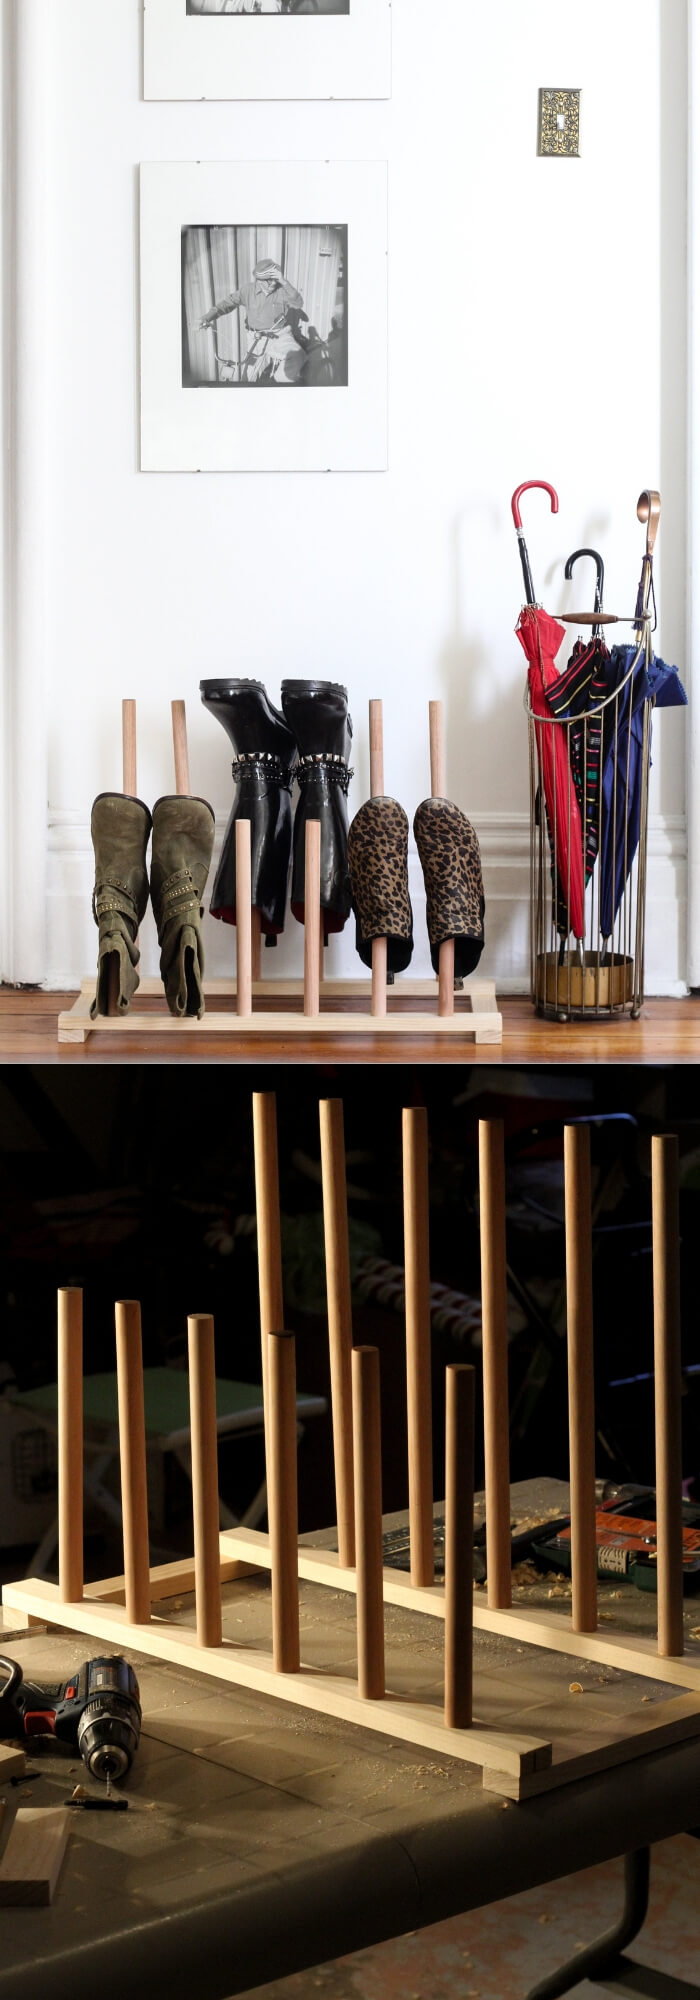 DIY Wooden Shoe Rack | Smart Shoe Storage Ideas & Designs For Any Zoom Size